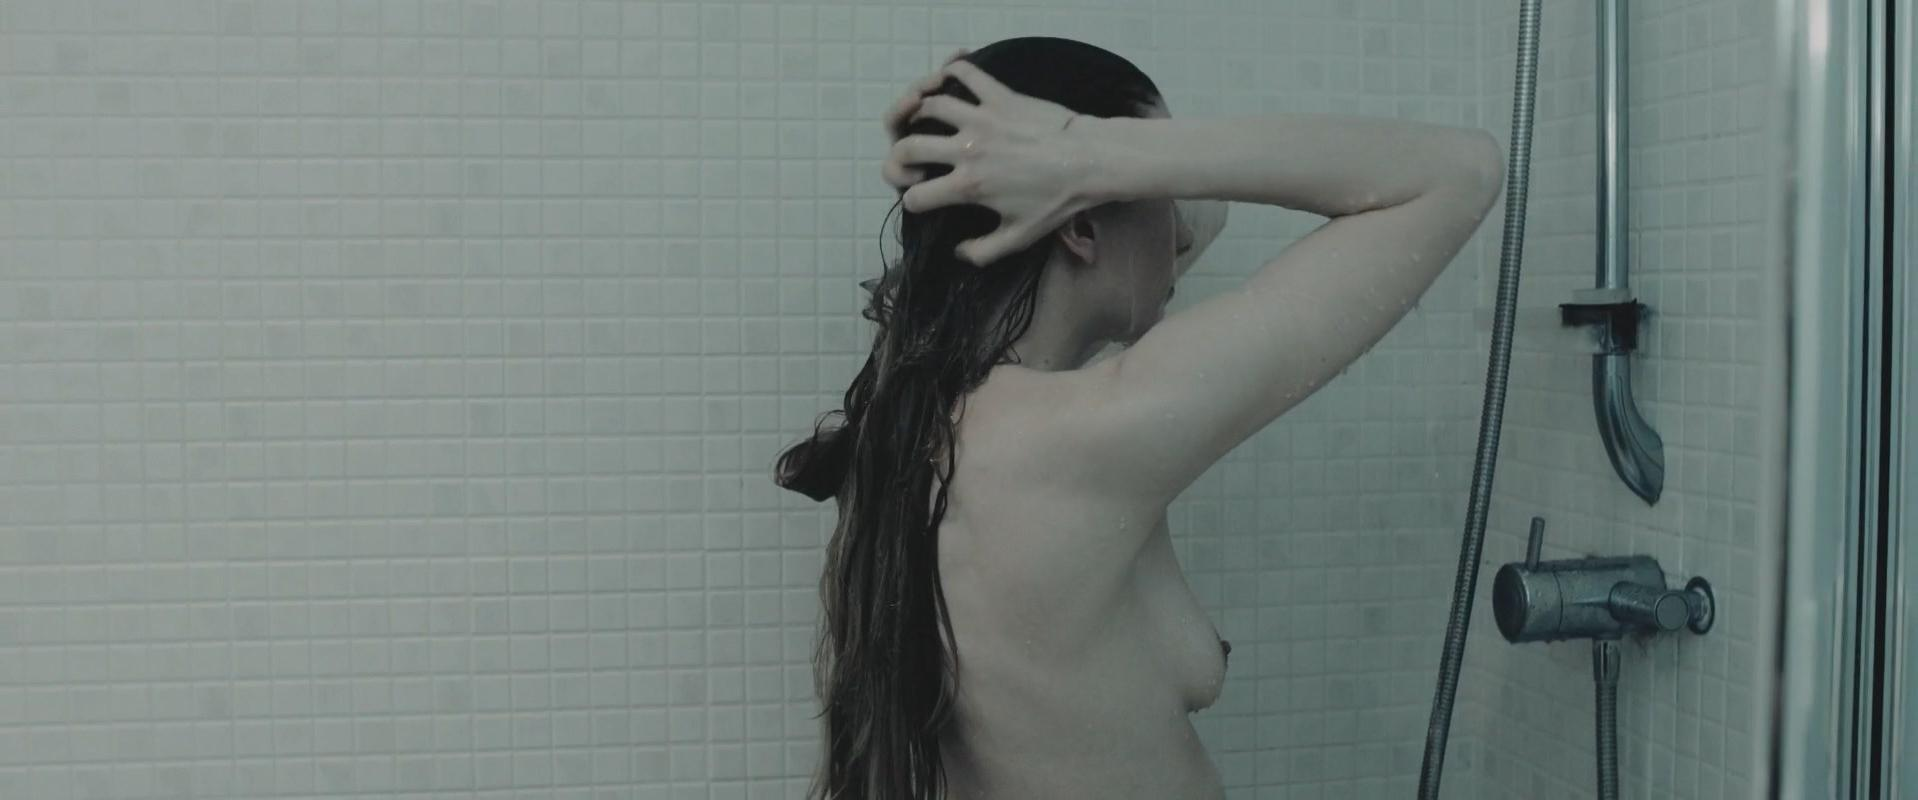 Anna Dawson nude - The Creature Below (2016)